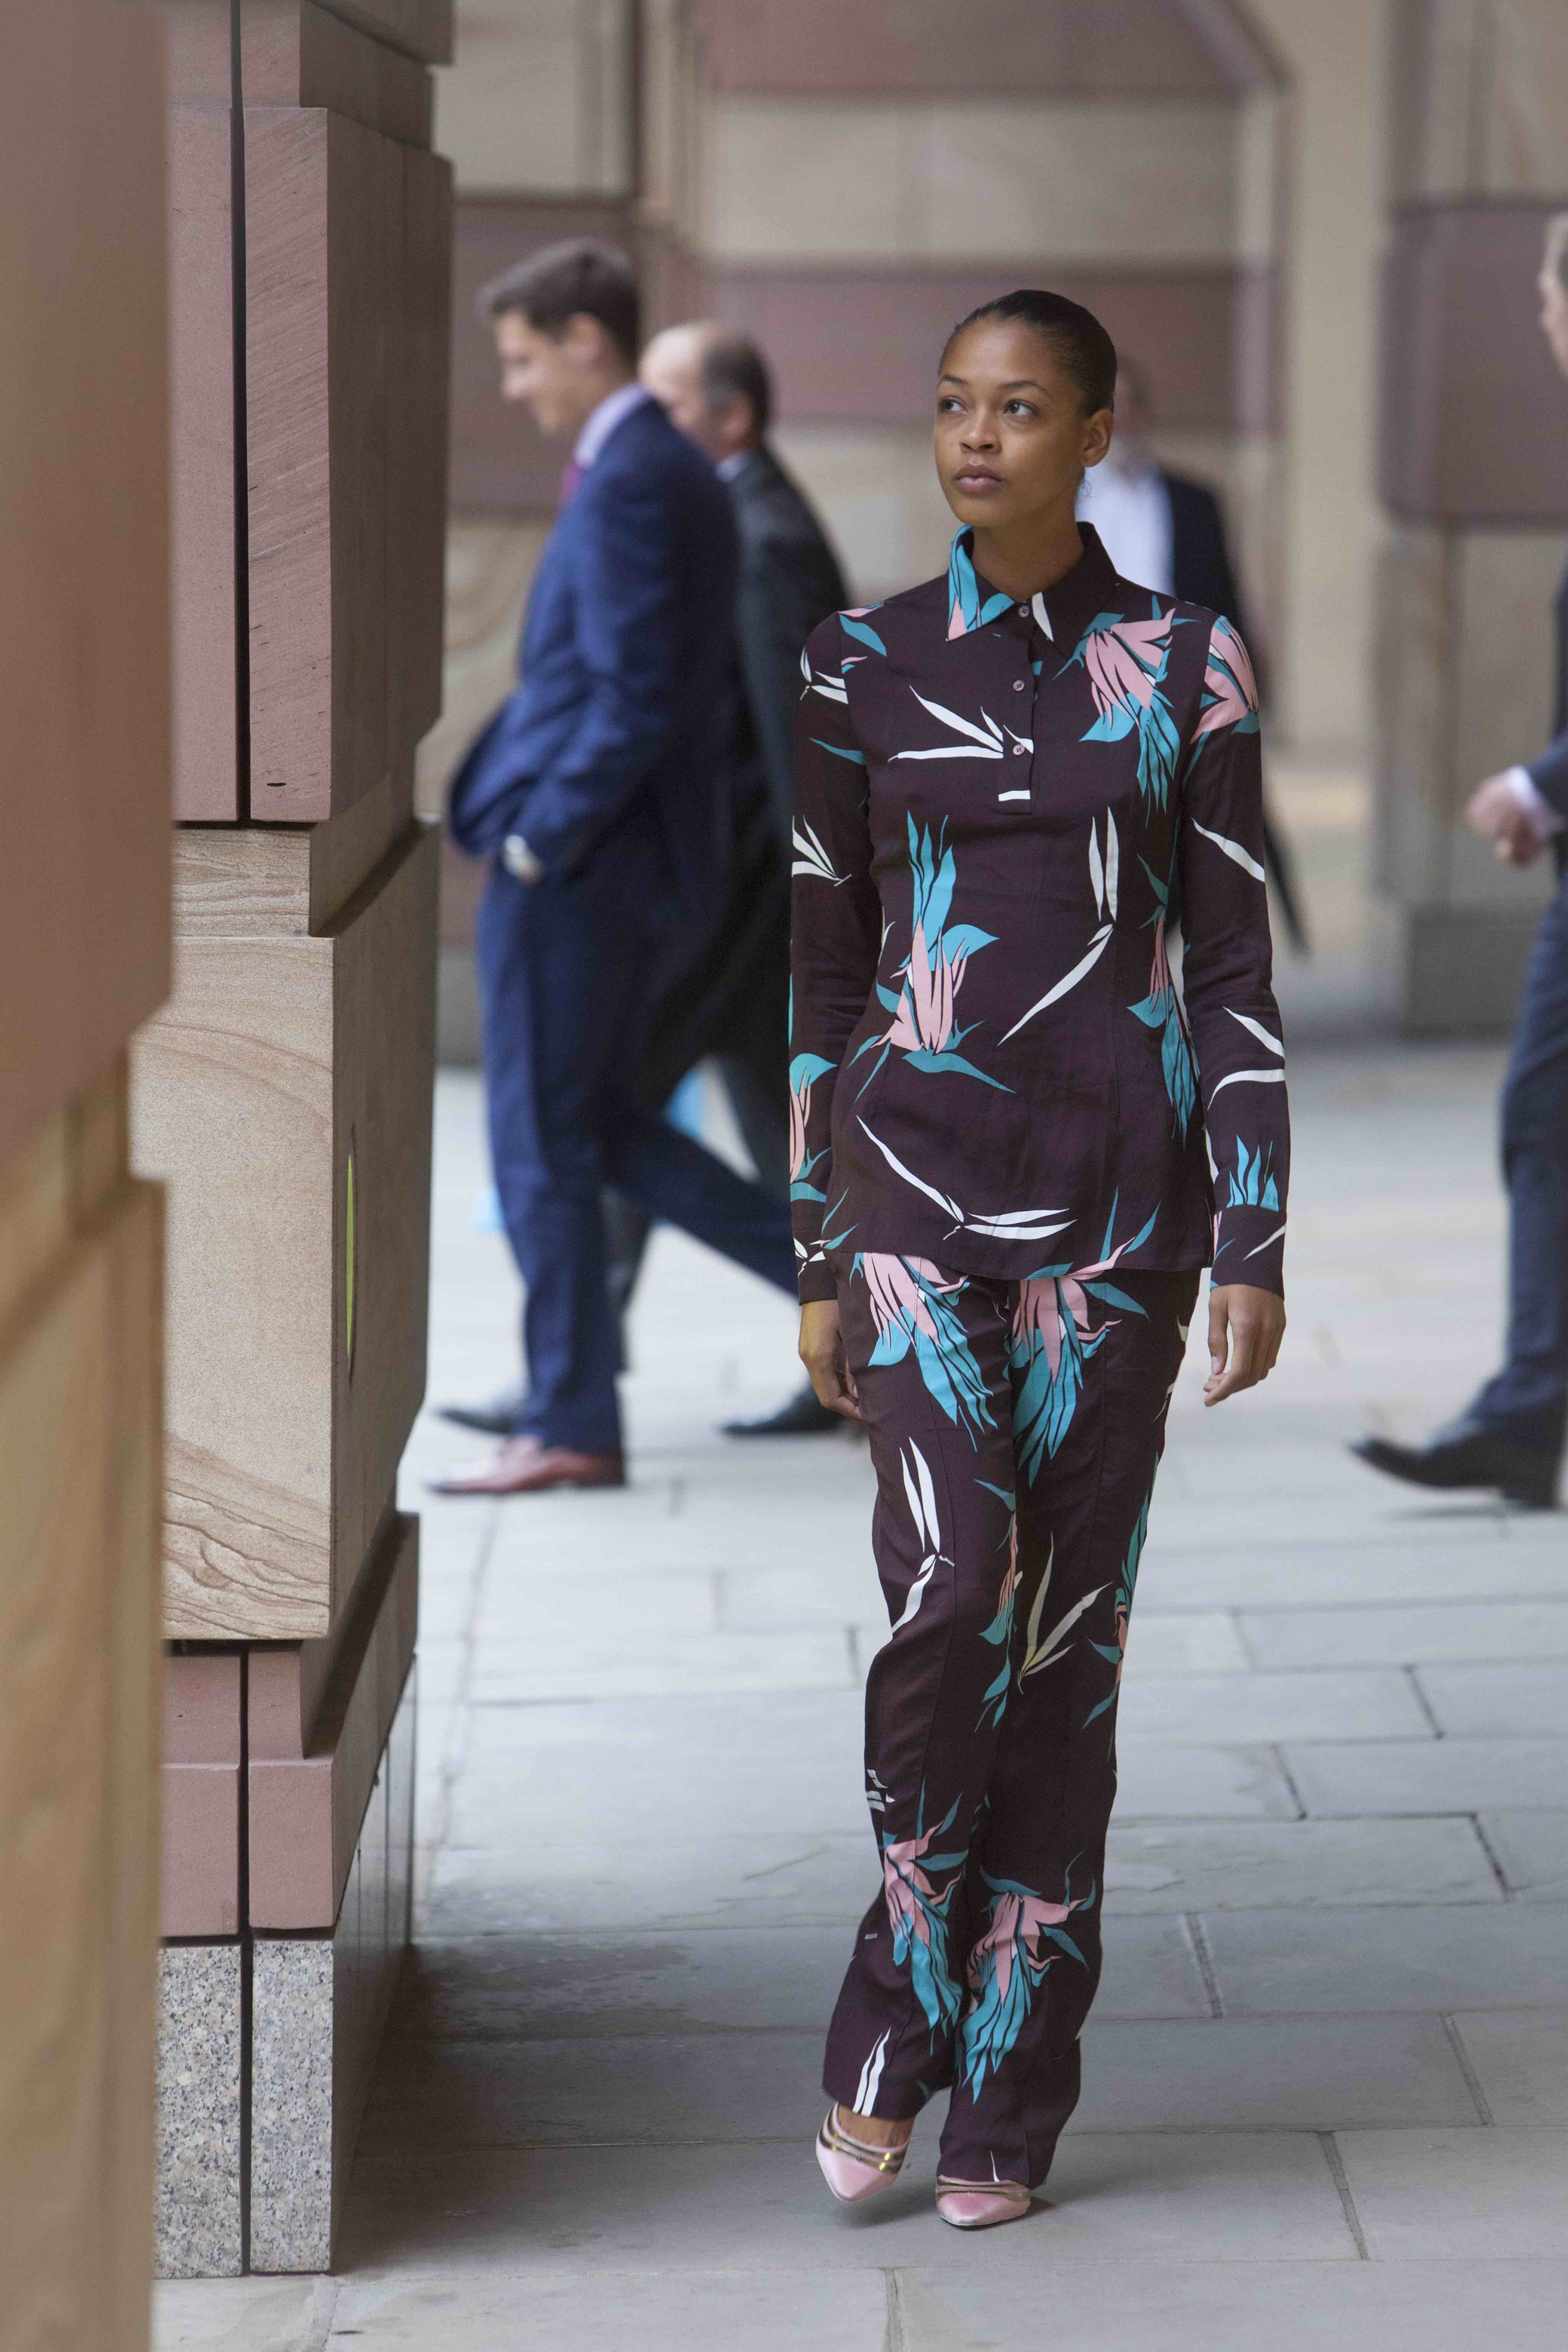 Printed top and trousers  MARNI , satin pumps  LOUIS VUITTON .